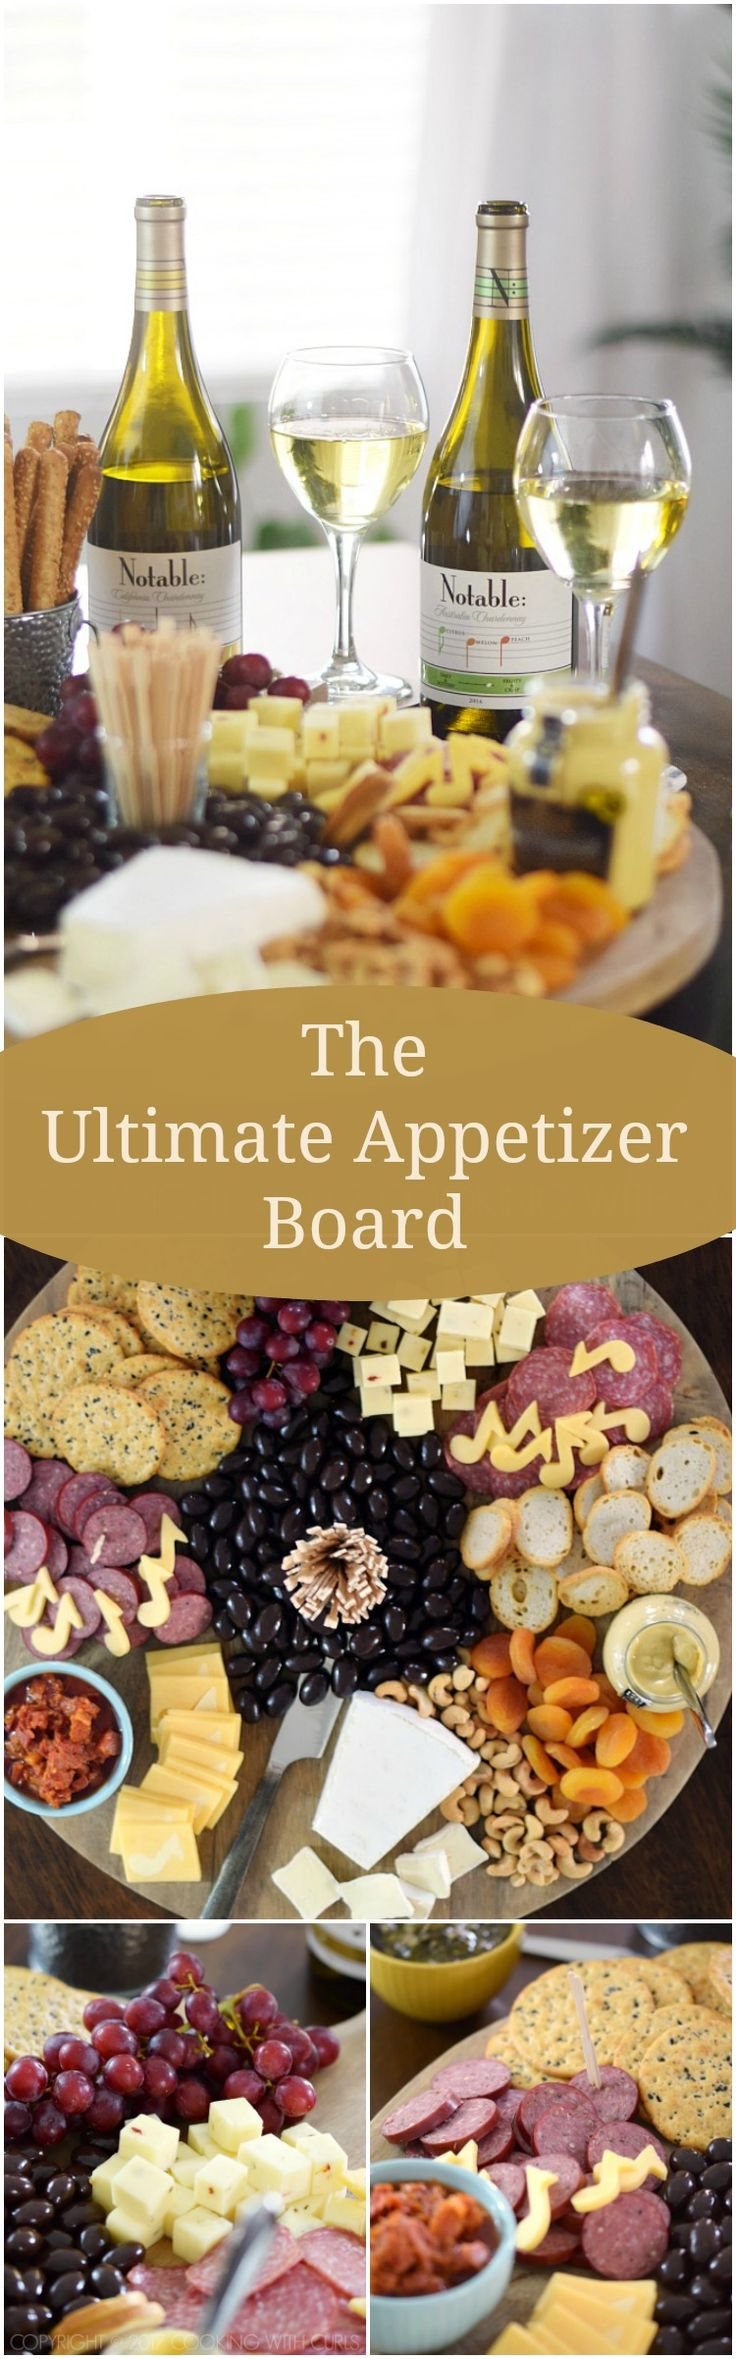 Msg 4 21+ The Ultimate Appetizer Board for an impromptu party using ingredients that are easily available at your grocery store! via @cookwithcurls